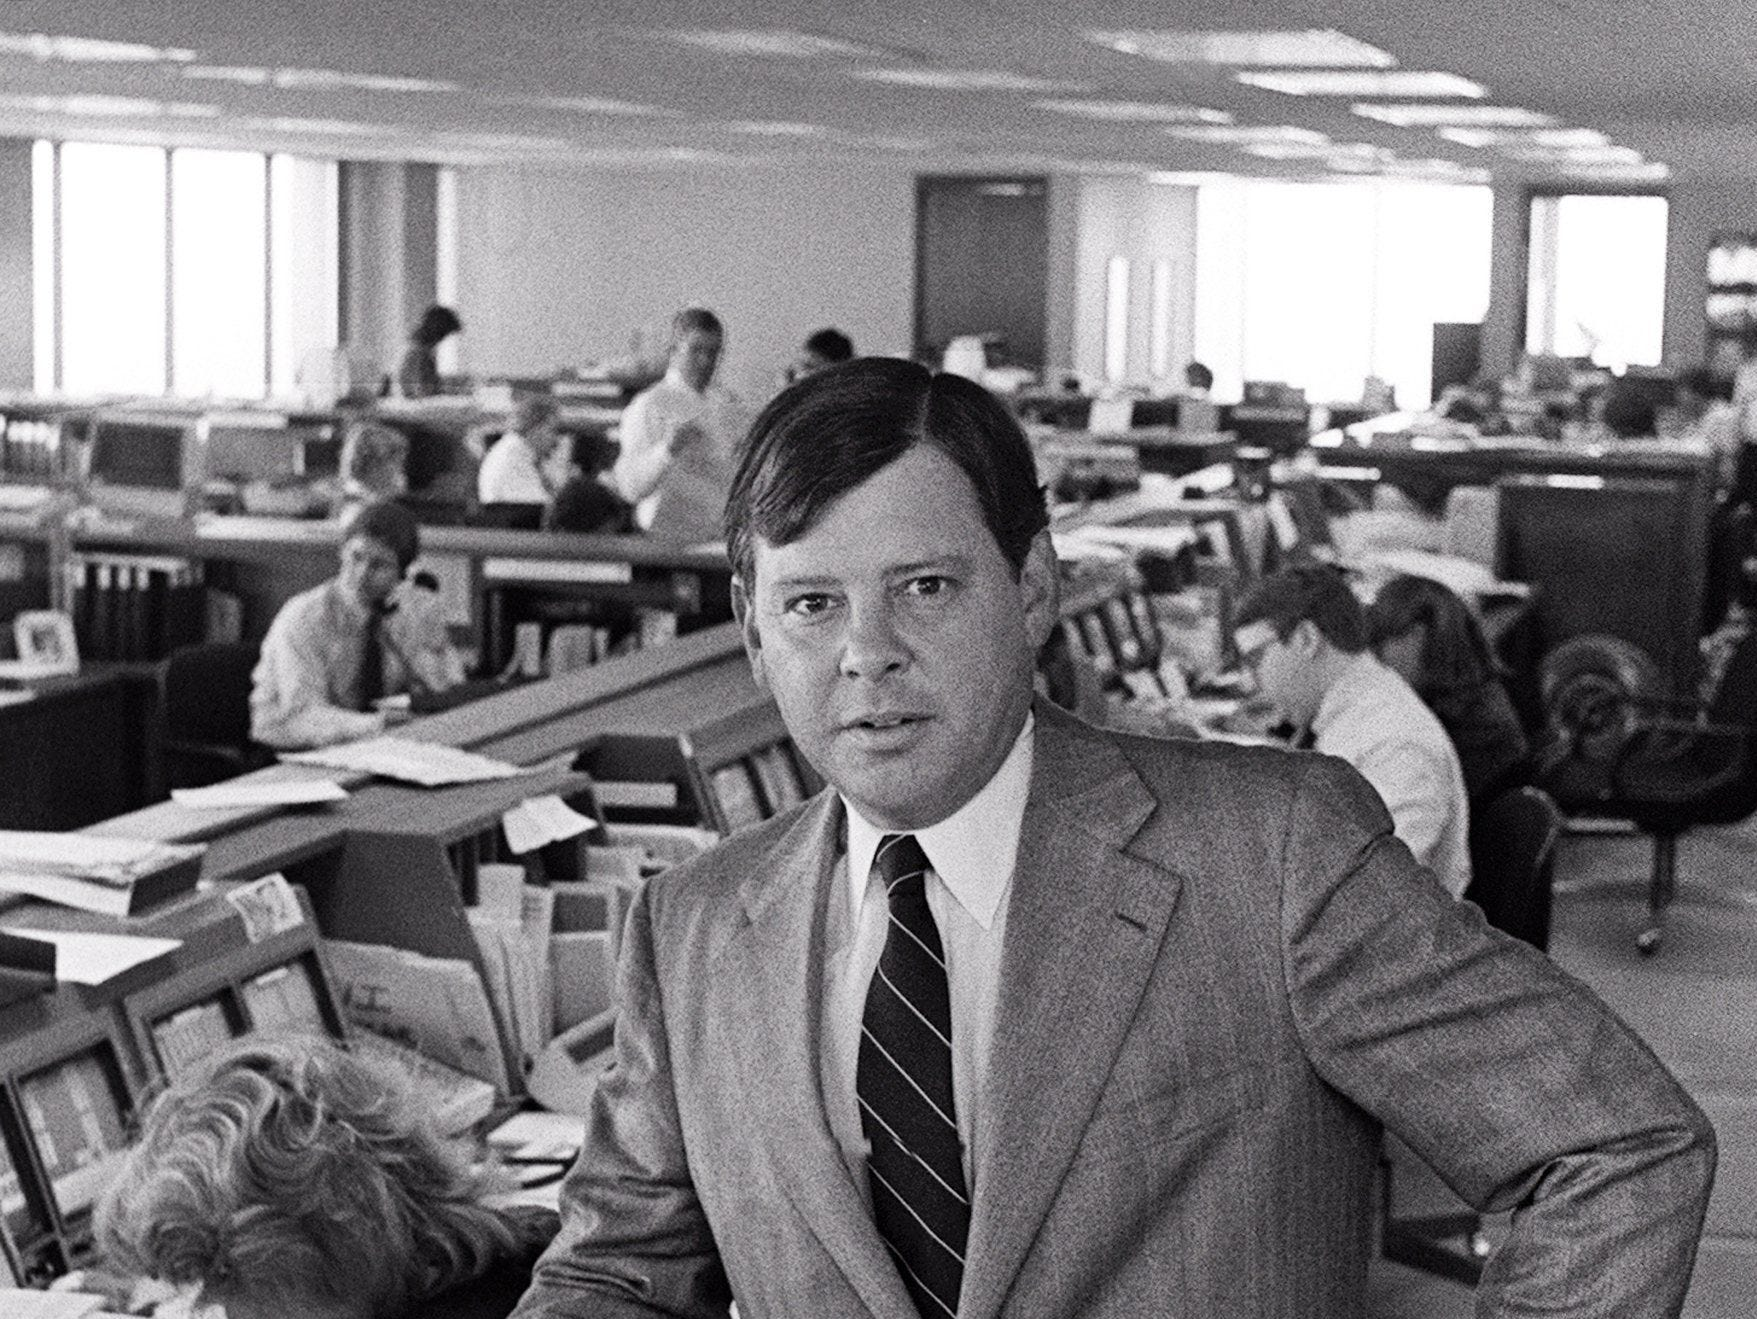 Allen Morgan Jr., shown here on 13 Feb 1984, is chief executive officer of Morgan Keegan & Company, Inc., the investment securities brokerage firm, which he founded in 1969 at the age of 27. In 1970, the company became the first Memphis brokerage firm to buy a seat on the New York Stock Exchange.